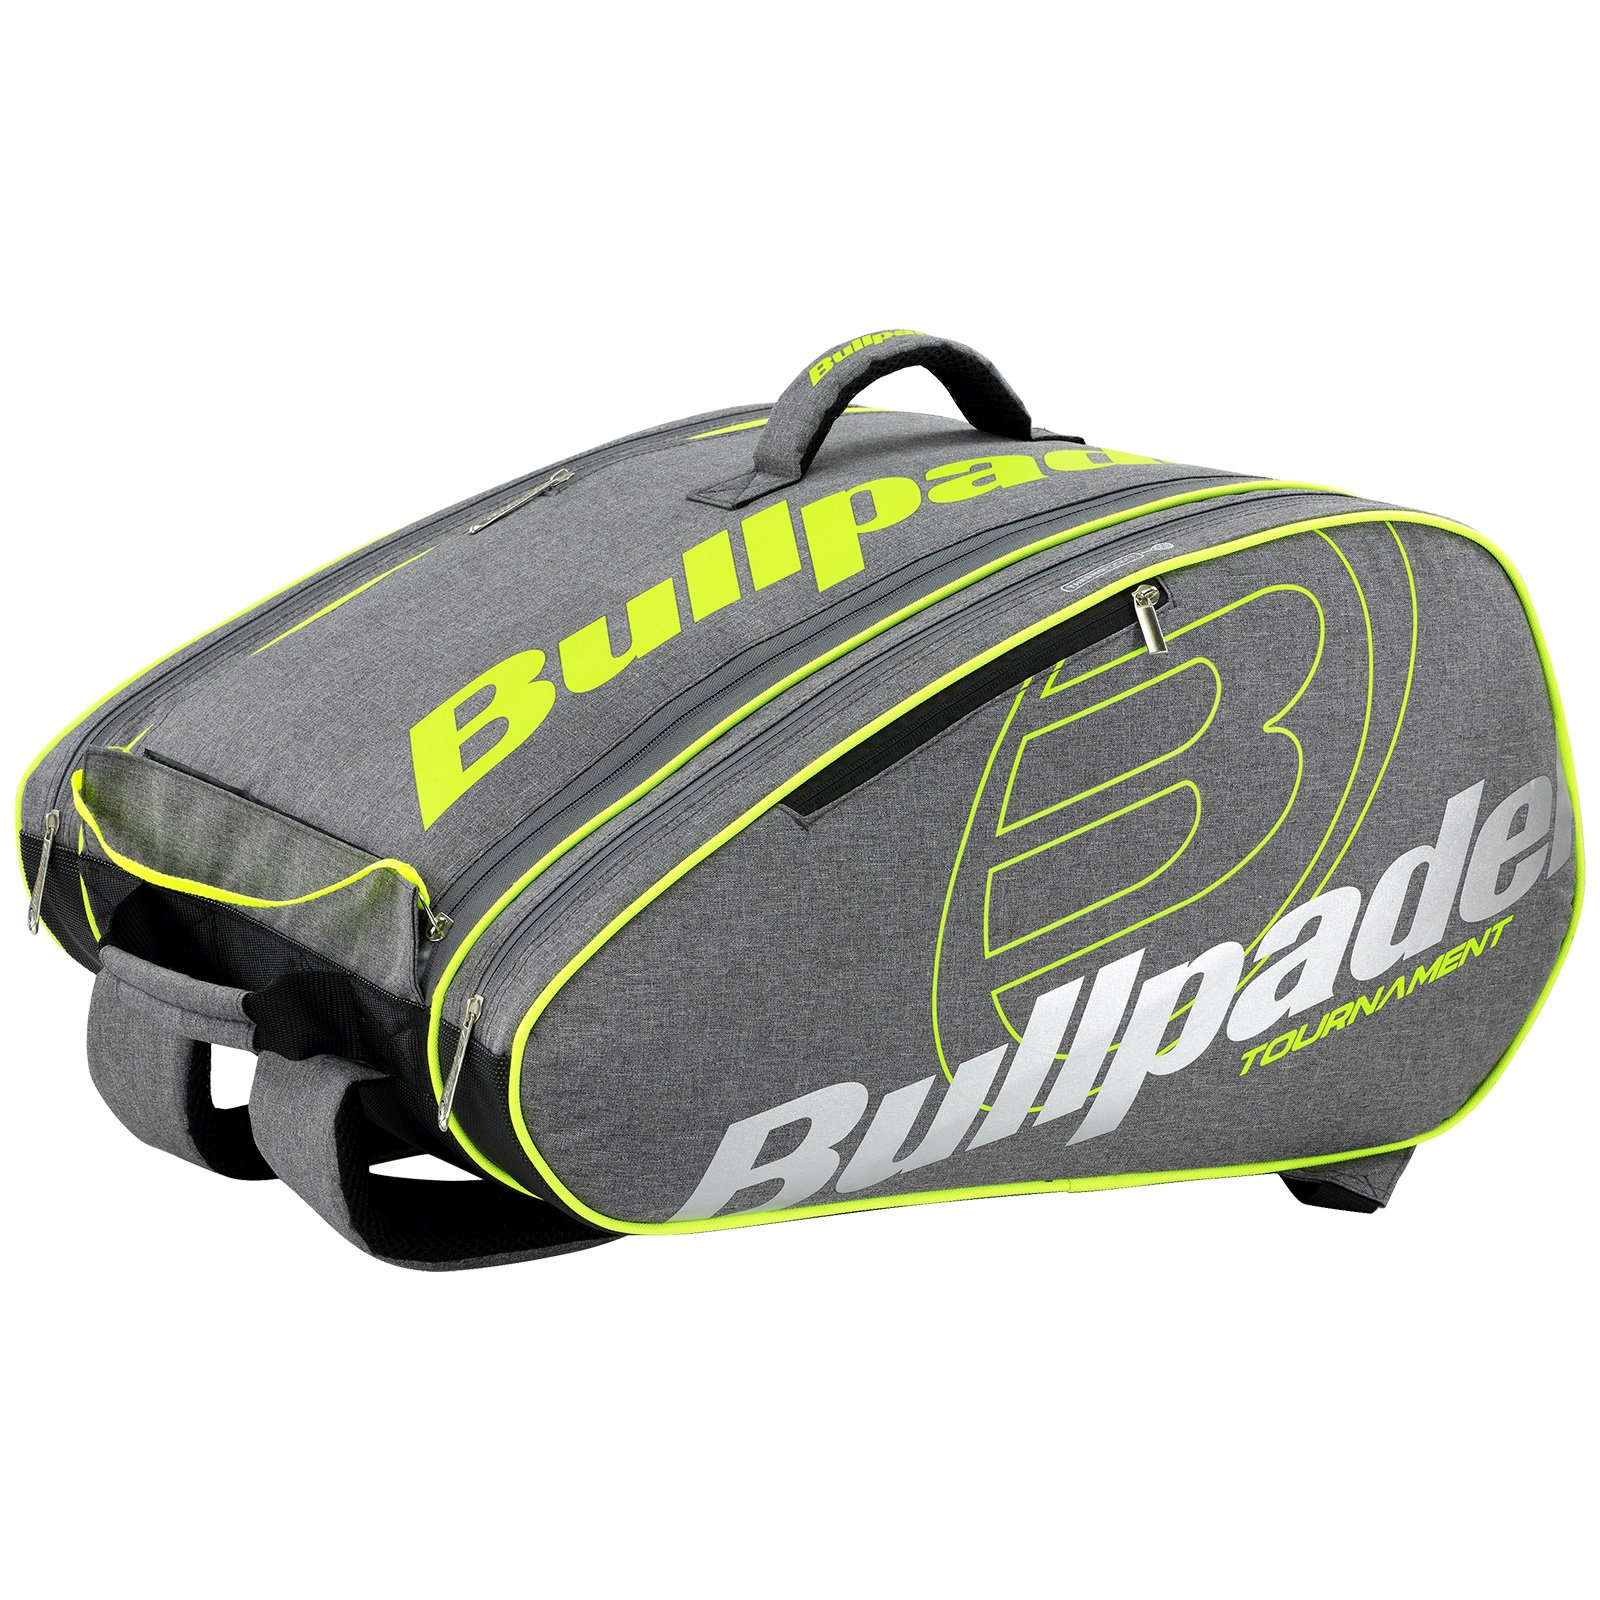 Paletero Bullpadel 17005 Big Yellow: Amazon.es: Deportes y aire libre